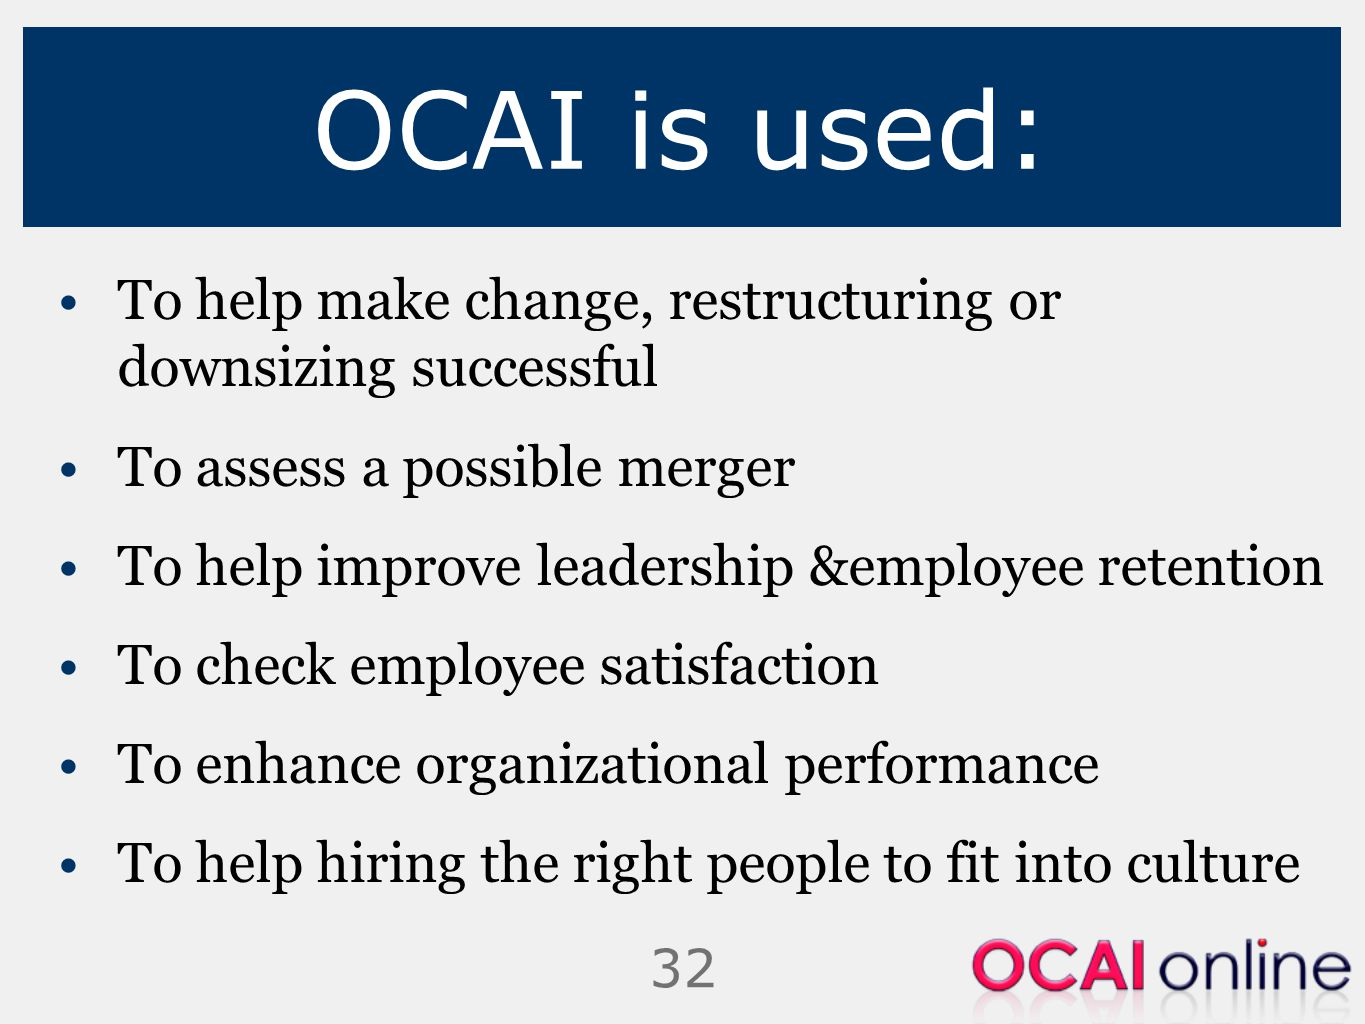 OCAI is used: To help make change, restructuring or downsizing successful. To assess a possible merger.